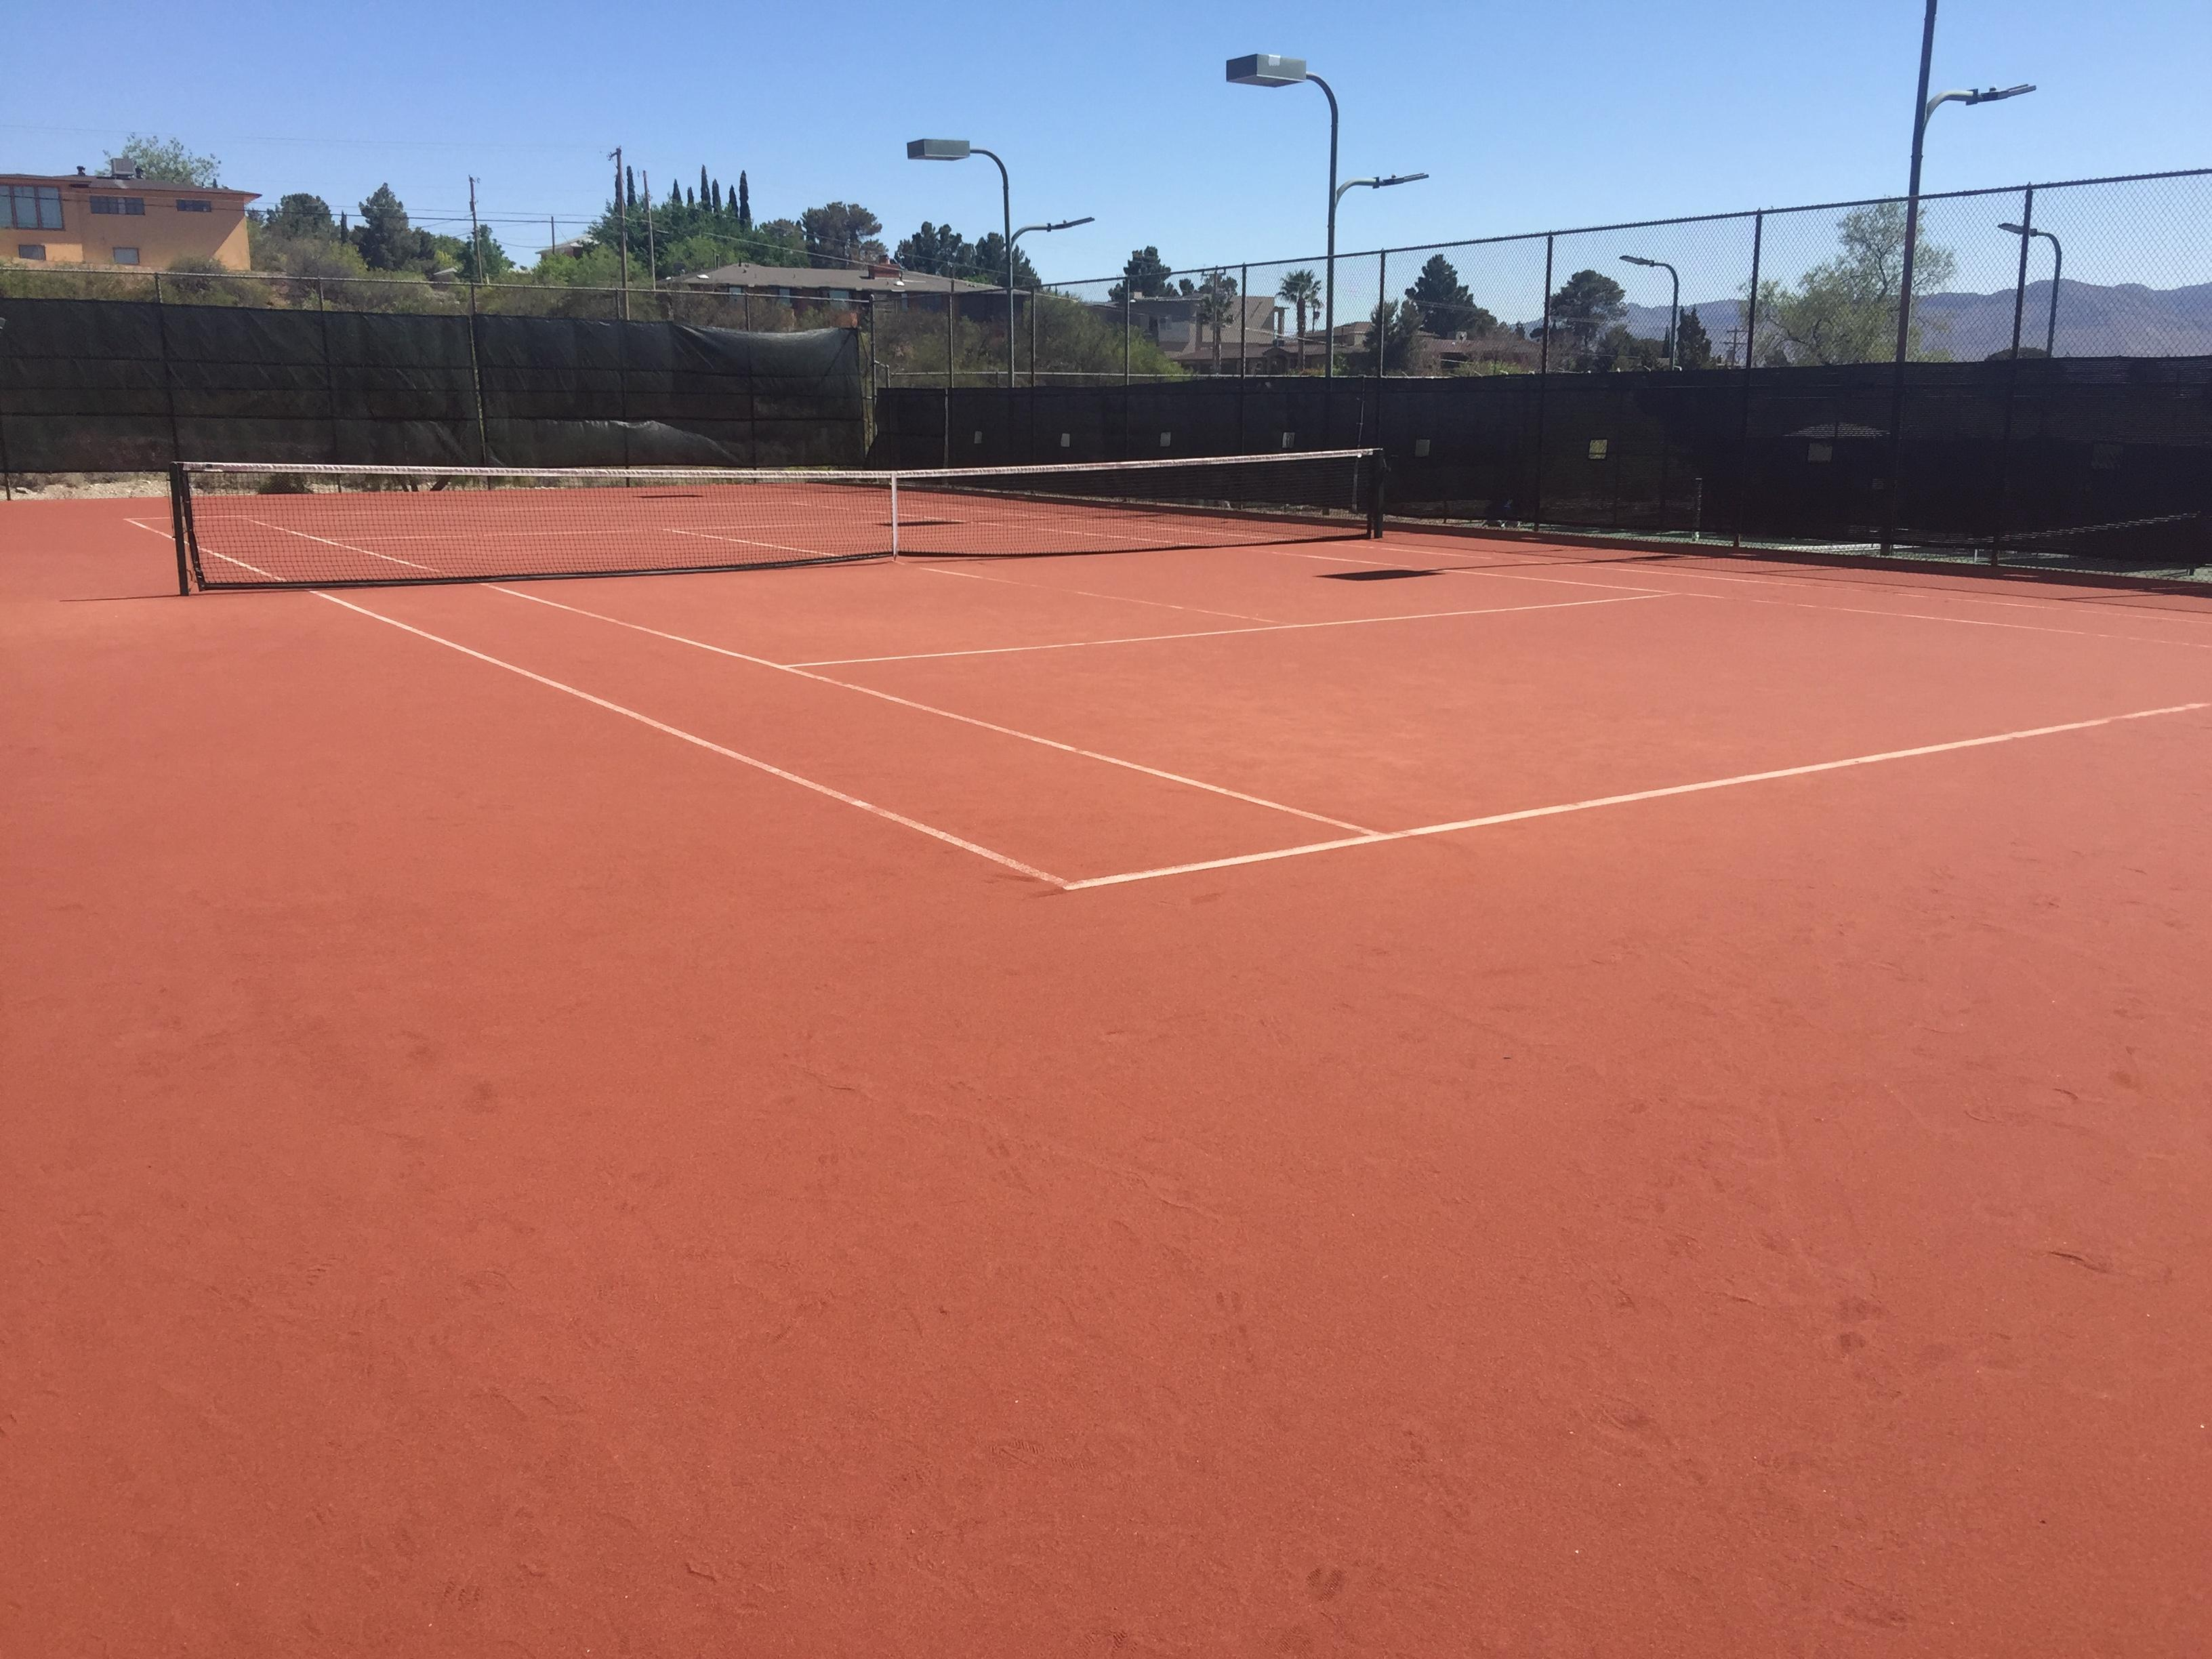 Clay court at El Paso Tennis Club near Kern